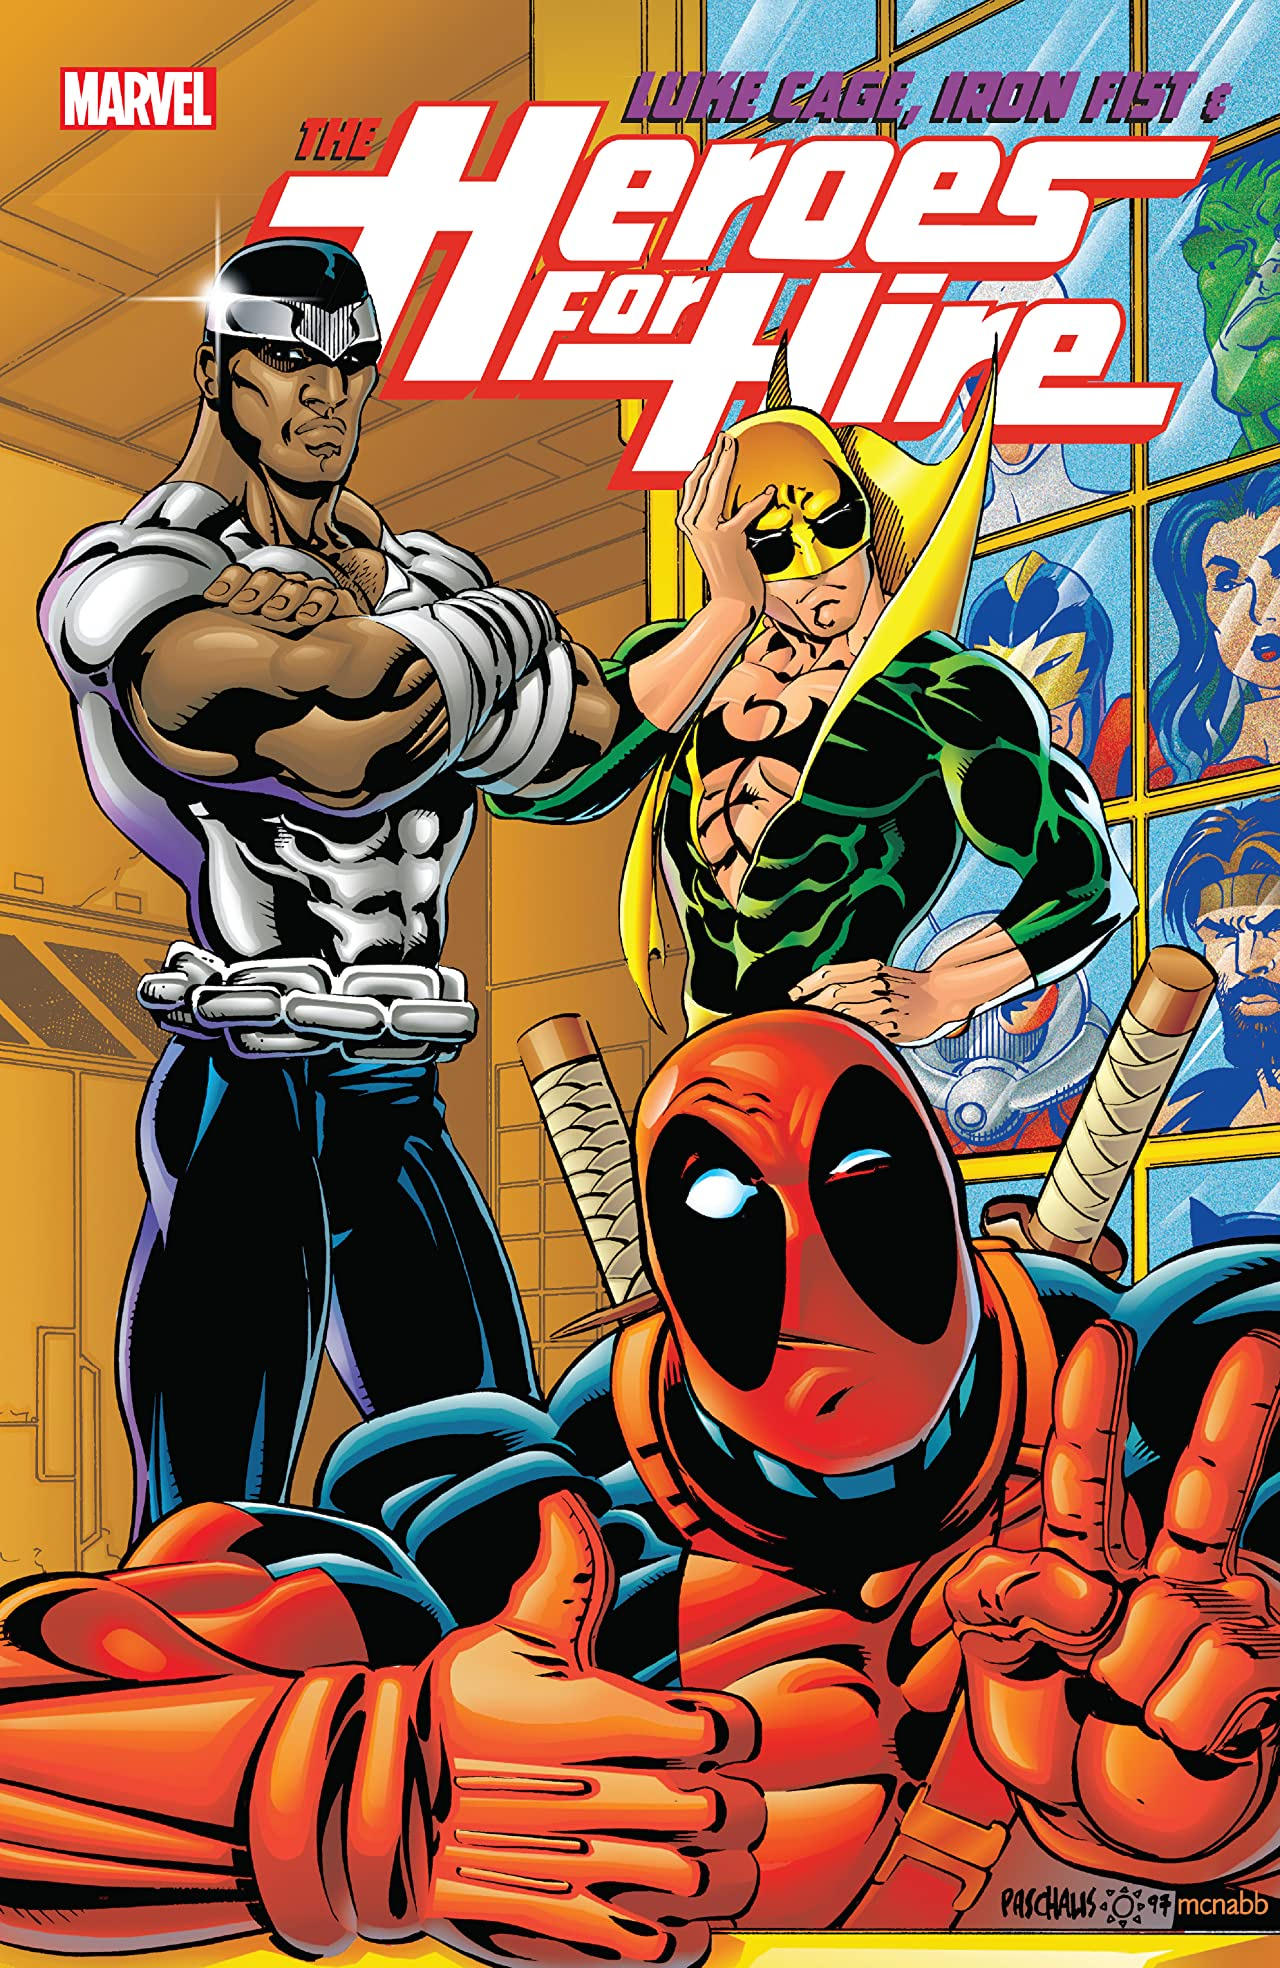 Luke Cage, Iron Fist, & The Heroes For Hire Vol. 2